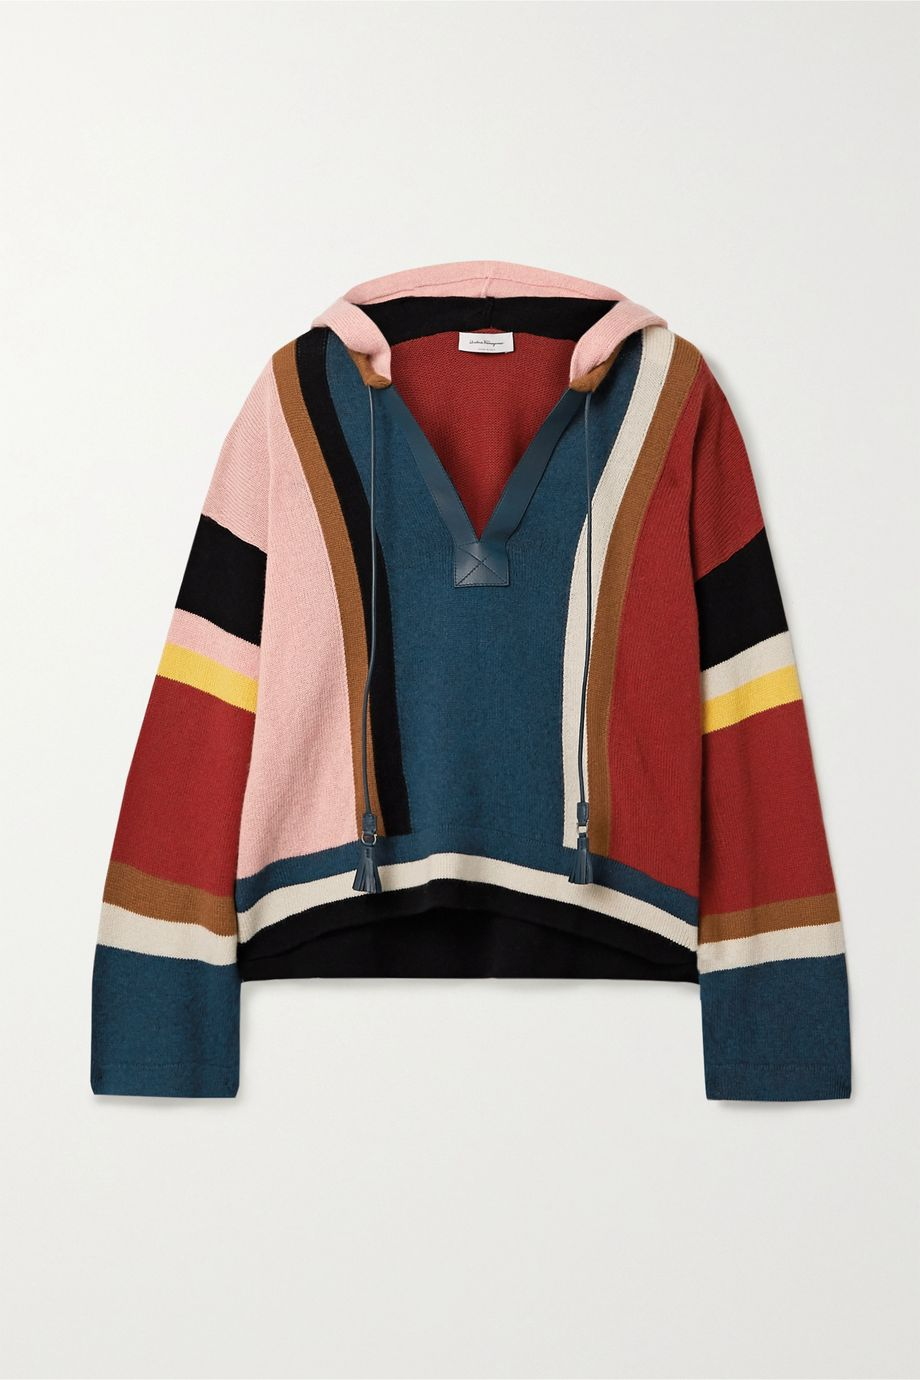 Salvatore Ferragamo Leather-trimmed color-block cashmere and cotton-blend hoodie